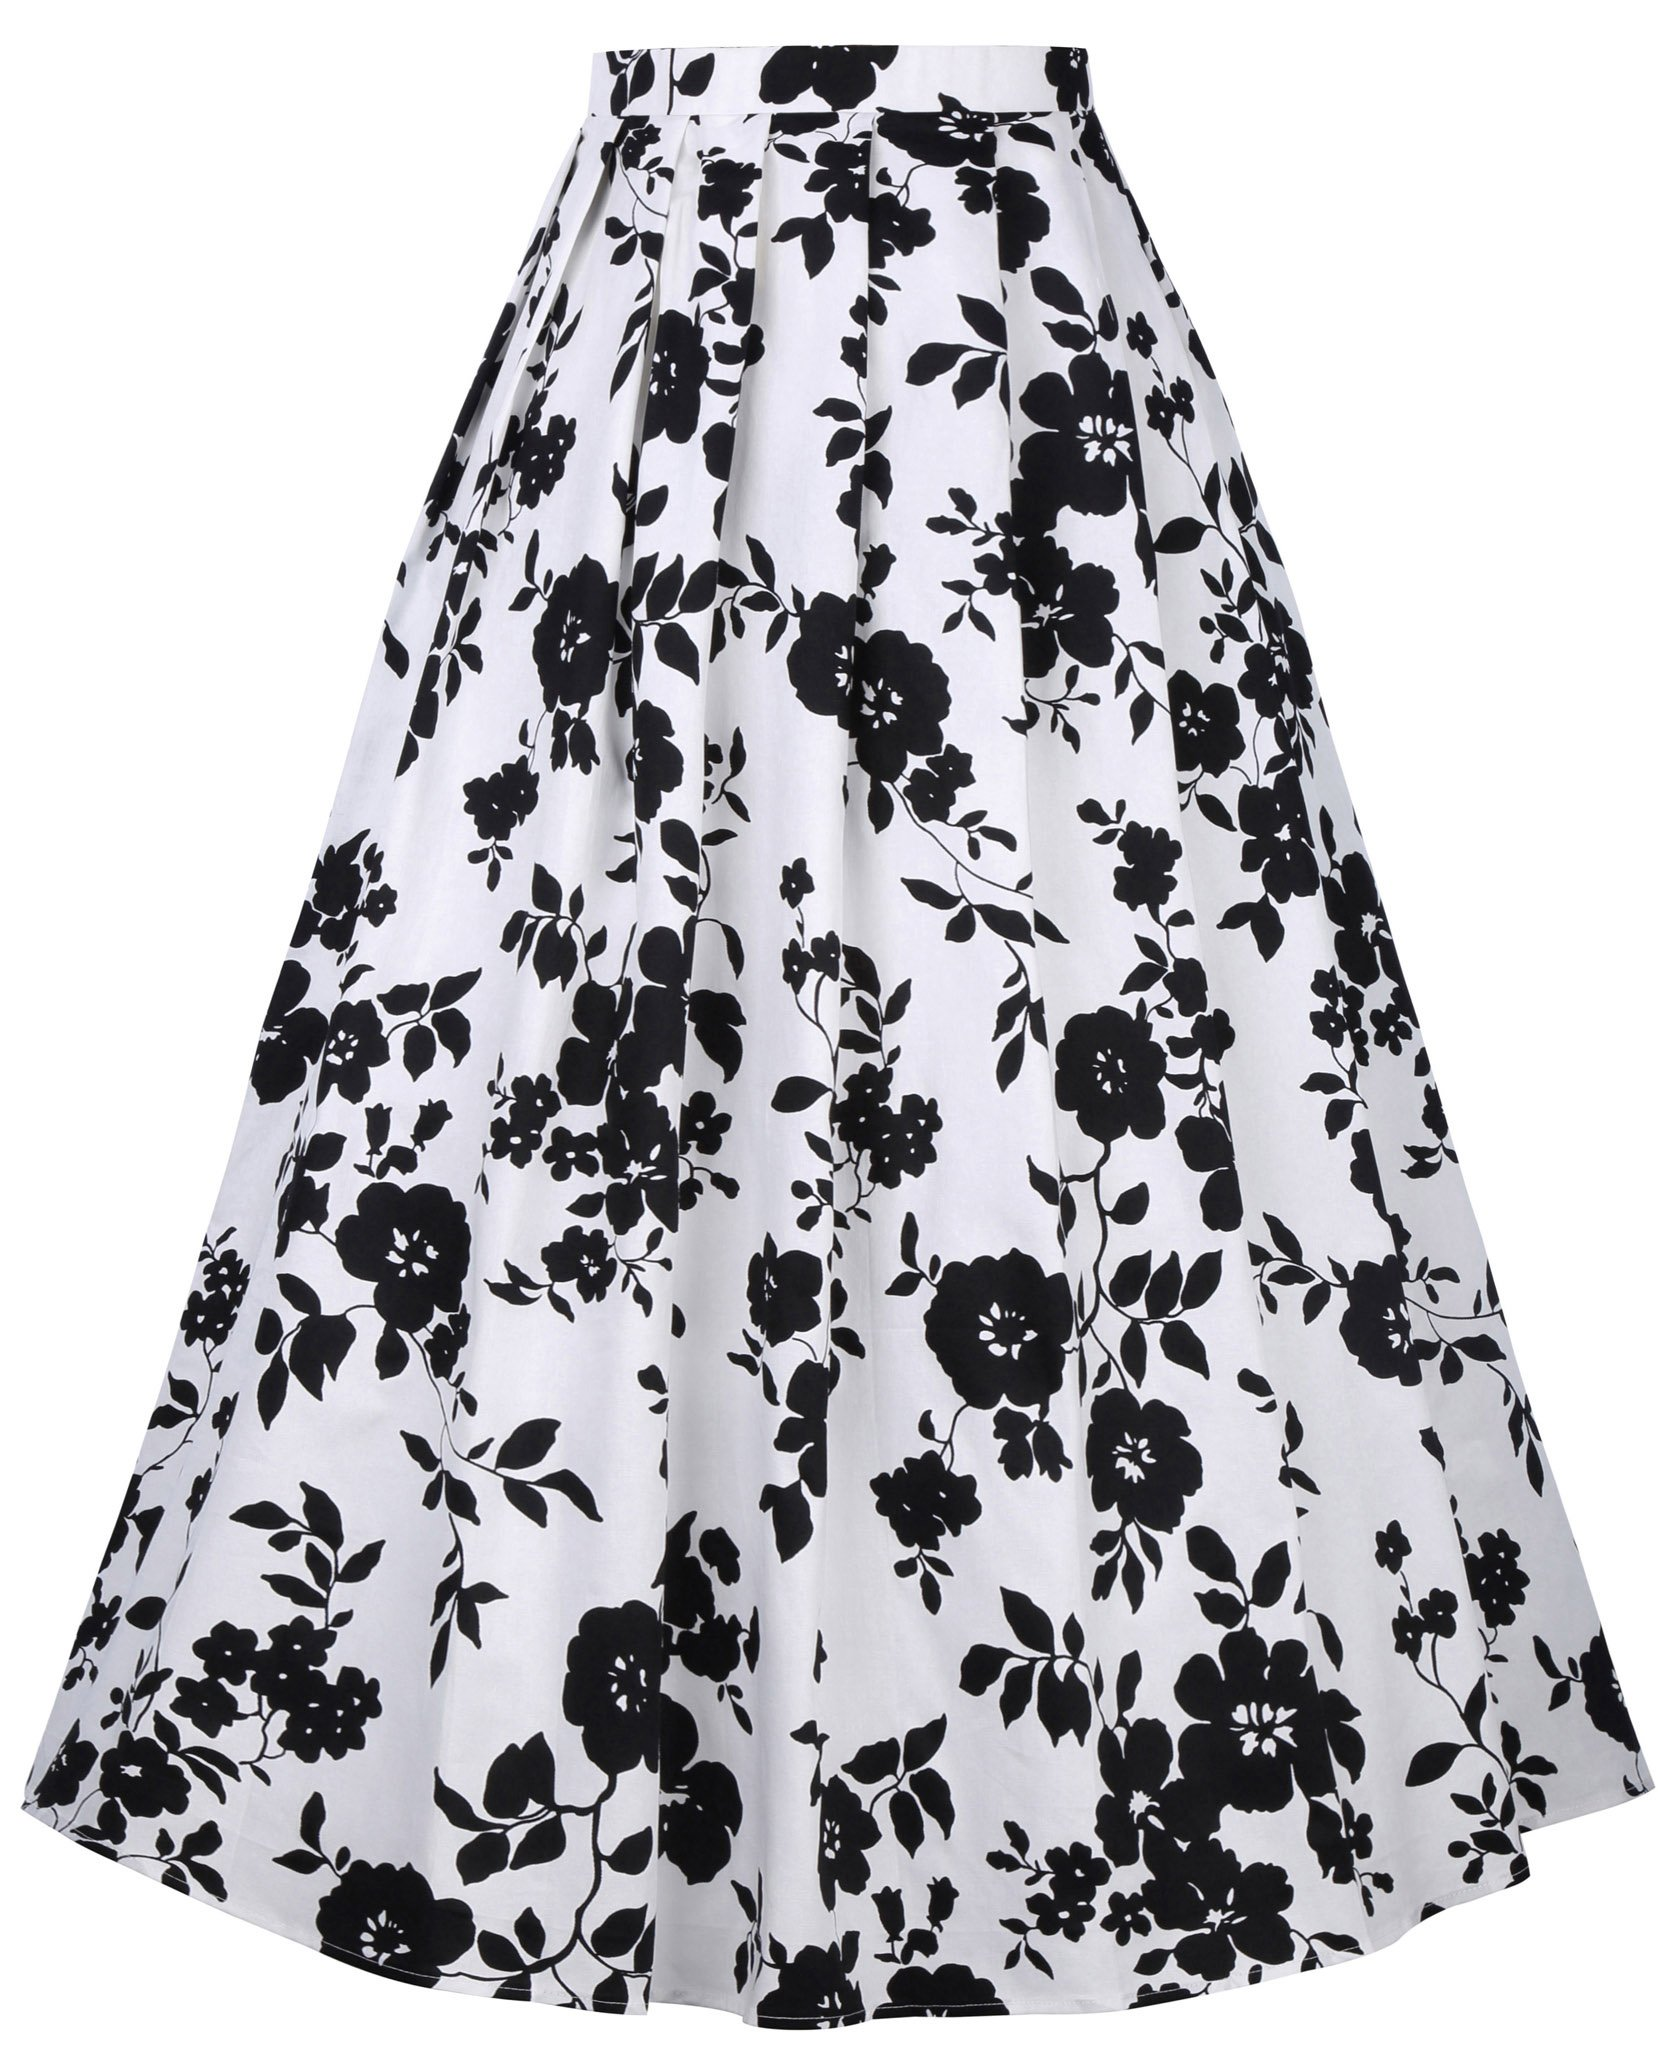 Pleated Long Skirt for Women 1950s Inspired Circle Skirts Size L BP324-1